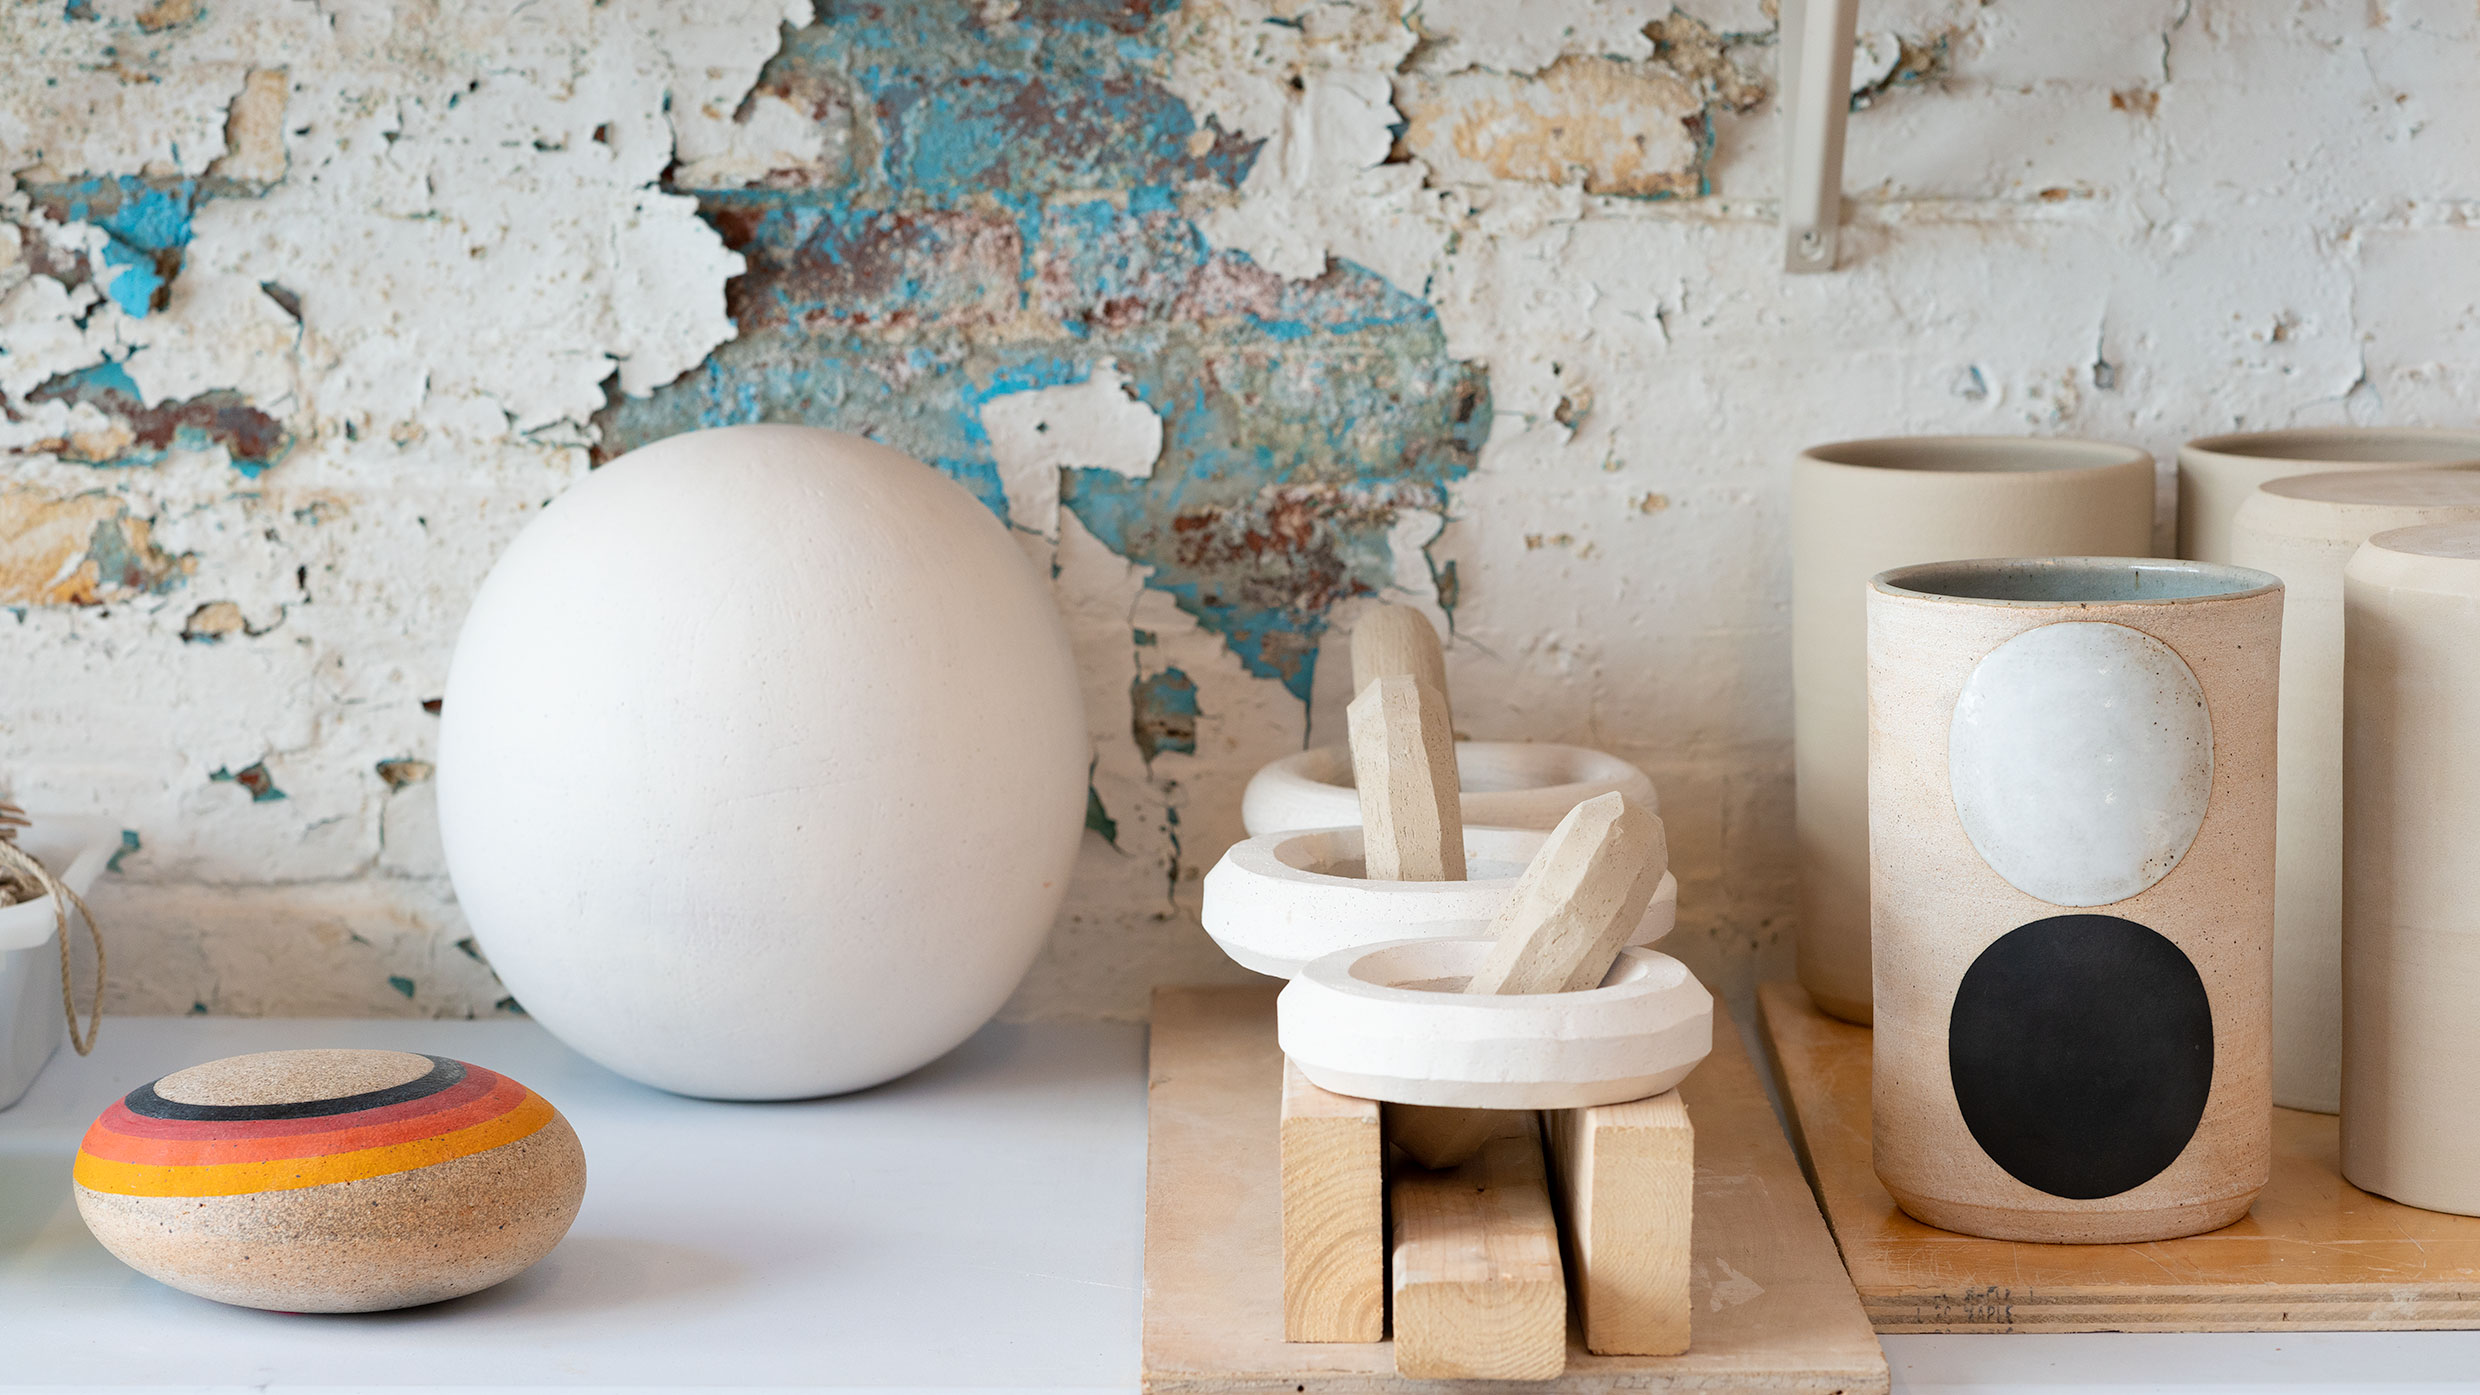 Finished and unfinished ceramic objects in Michele Quan's studio. Photo: Allison Chipak